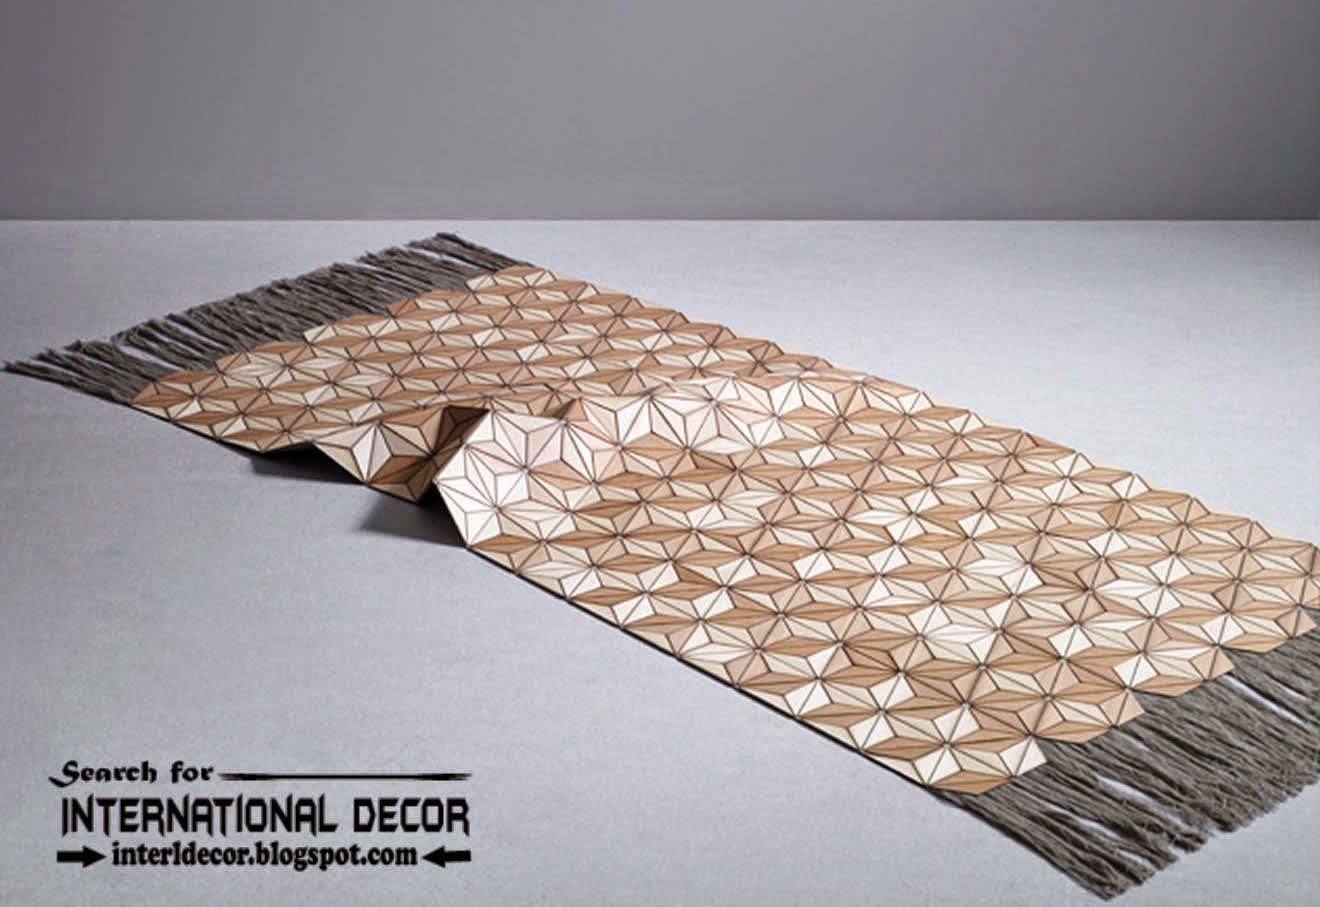 New collection of Eco-friendly wooden carpet and rugs textured